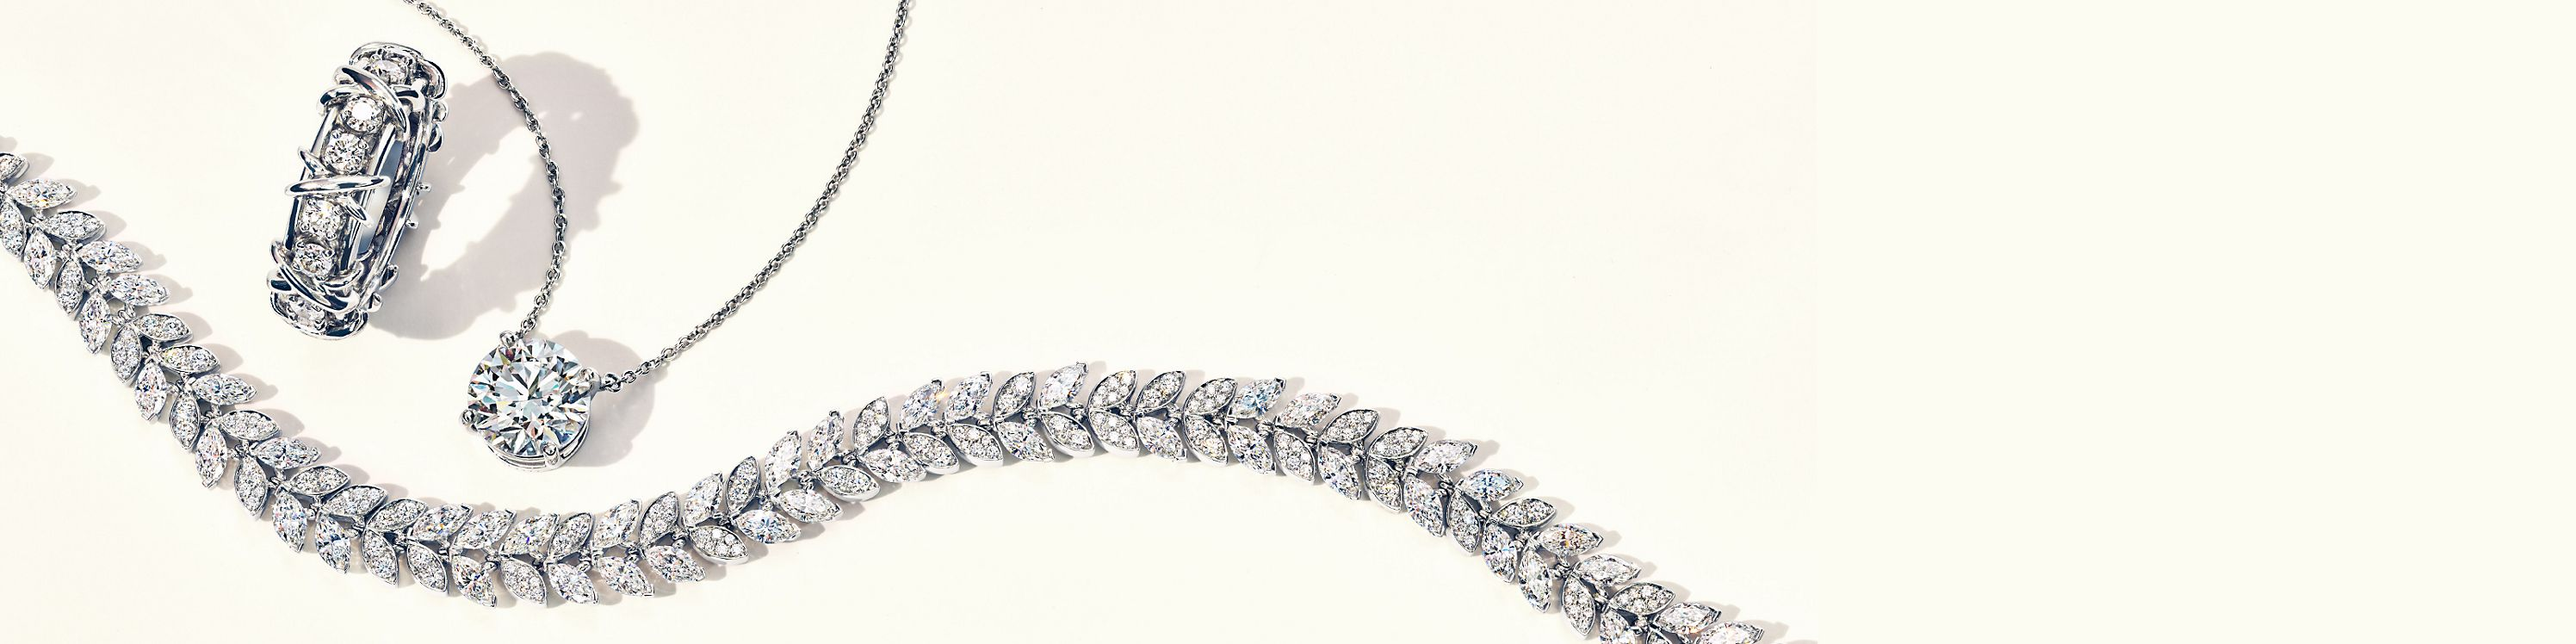 Gioielli di diamanti Tiffany & Co.